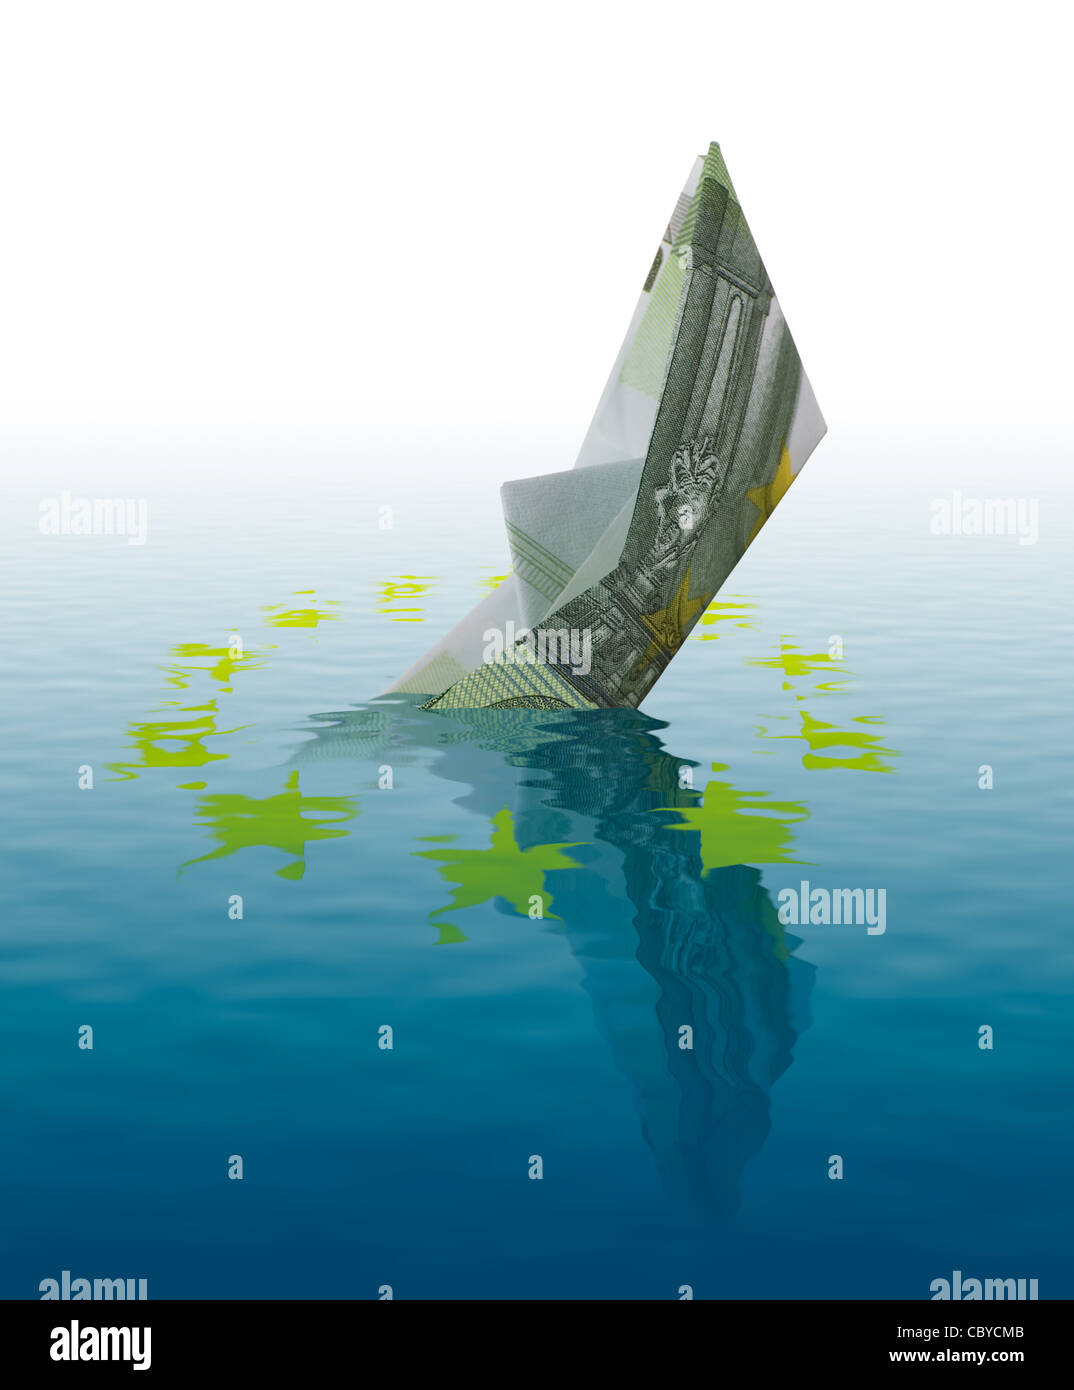 Euro bankruptcy concept - ship made of 100 euro banknote sinking in water - Stock Image